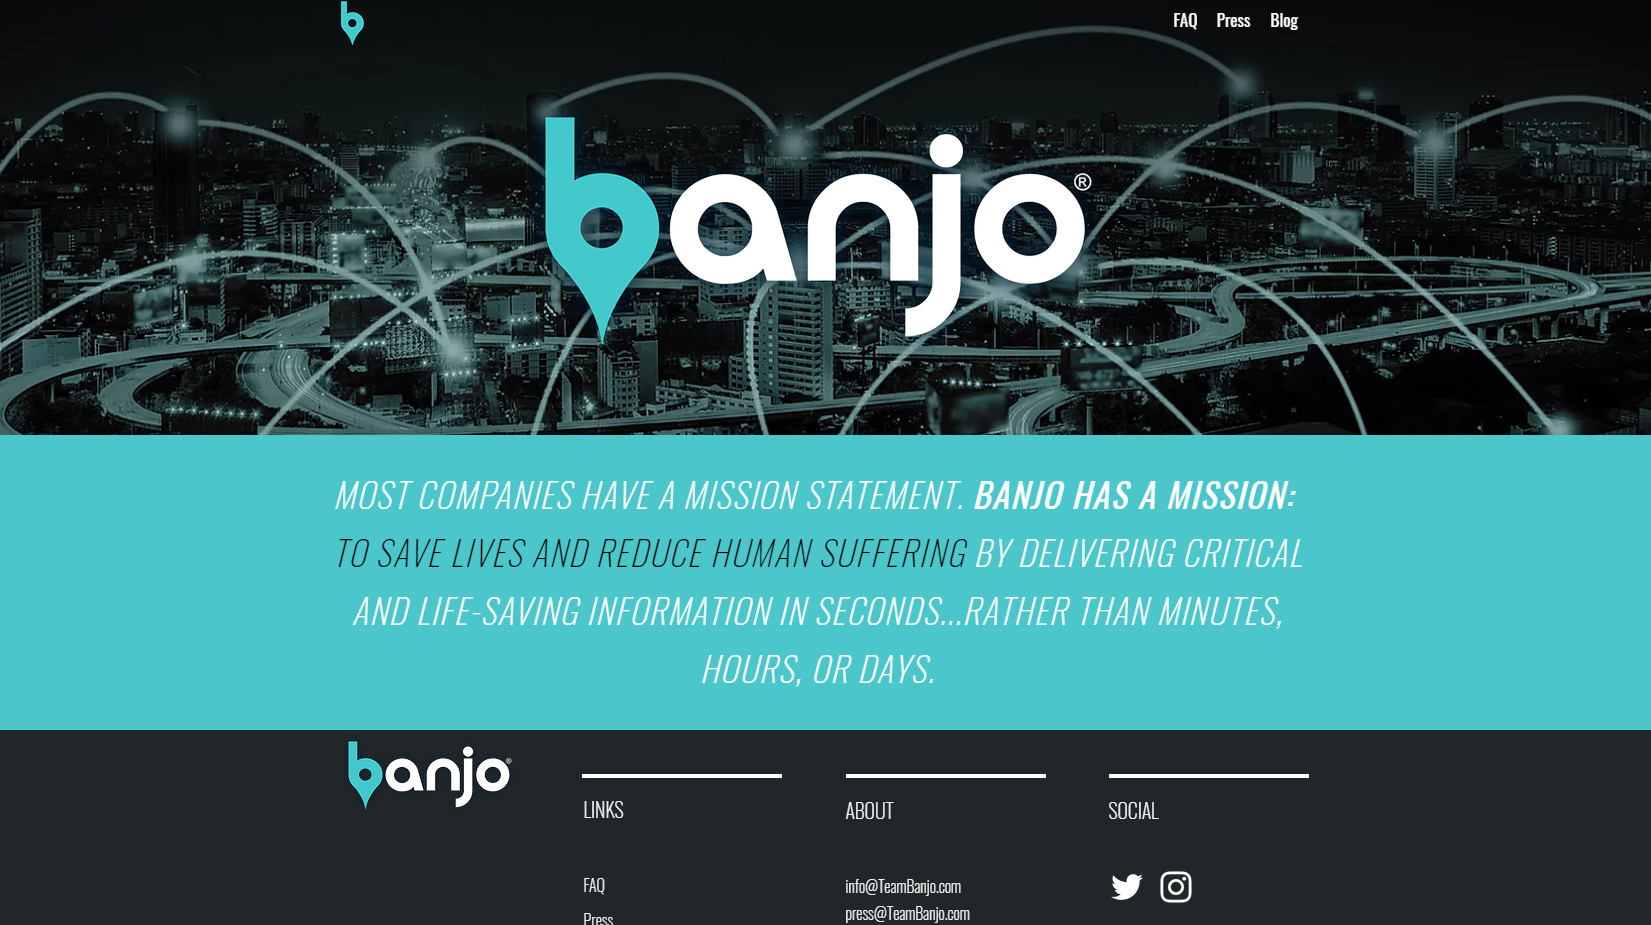 CEO Of Surveillance Firm Banjo Resigns After Past Involvement With KKK Comes To Light